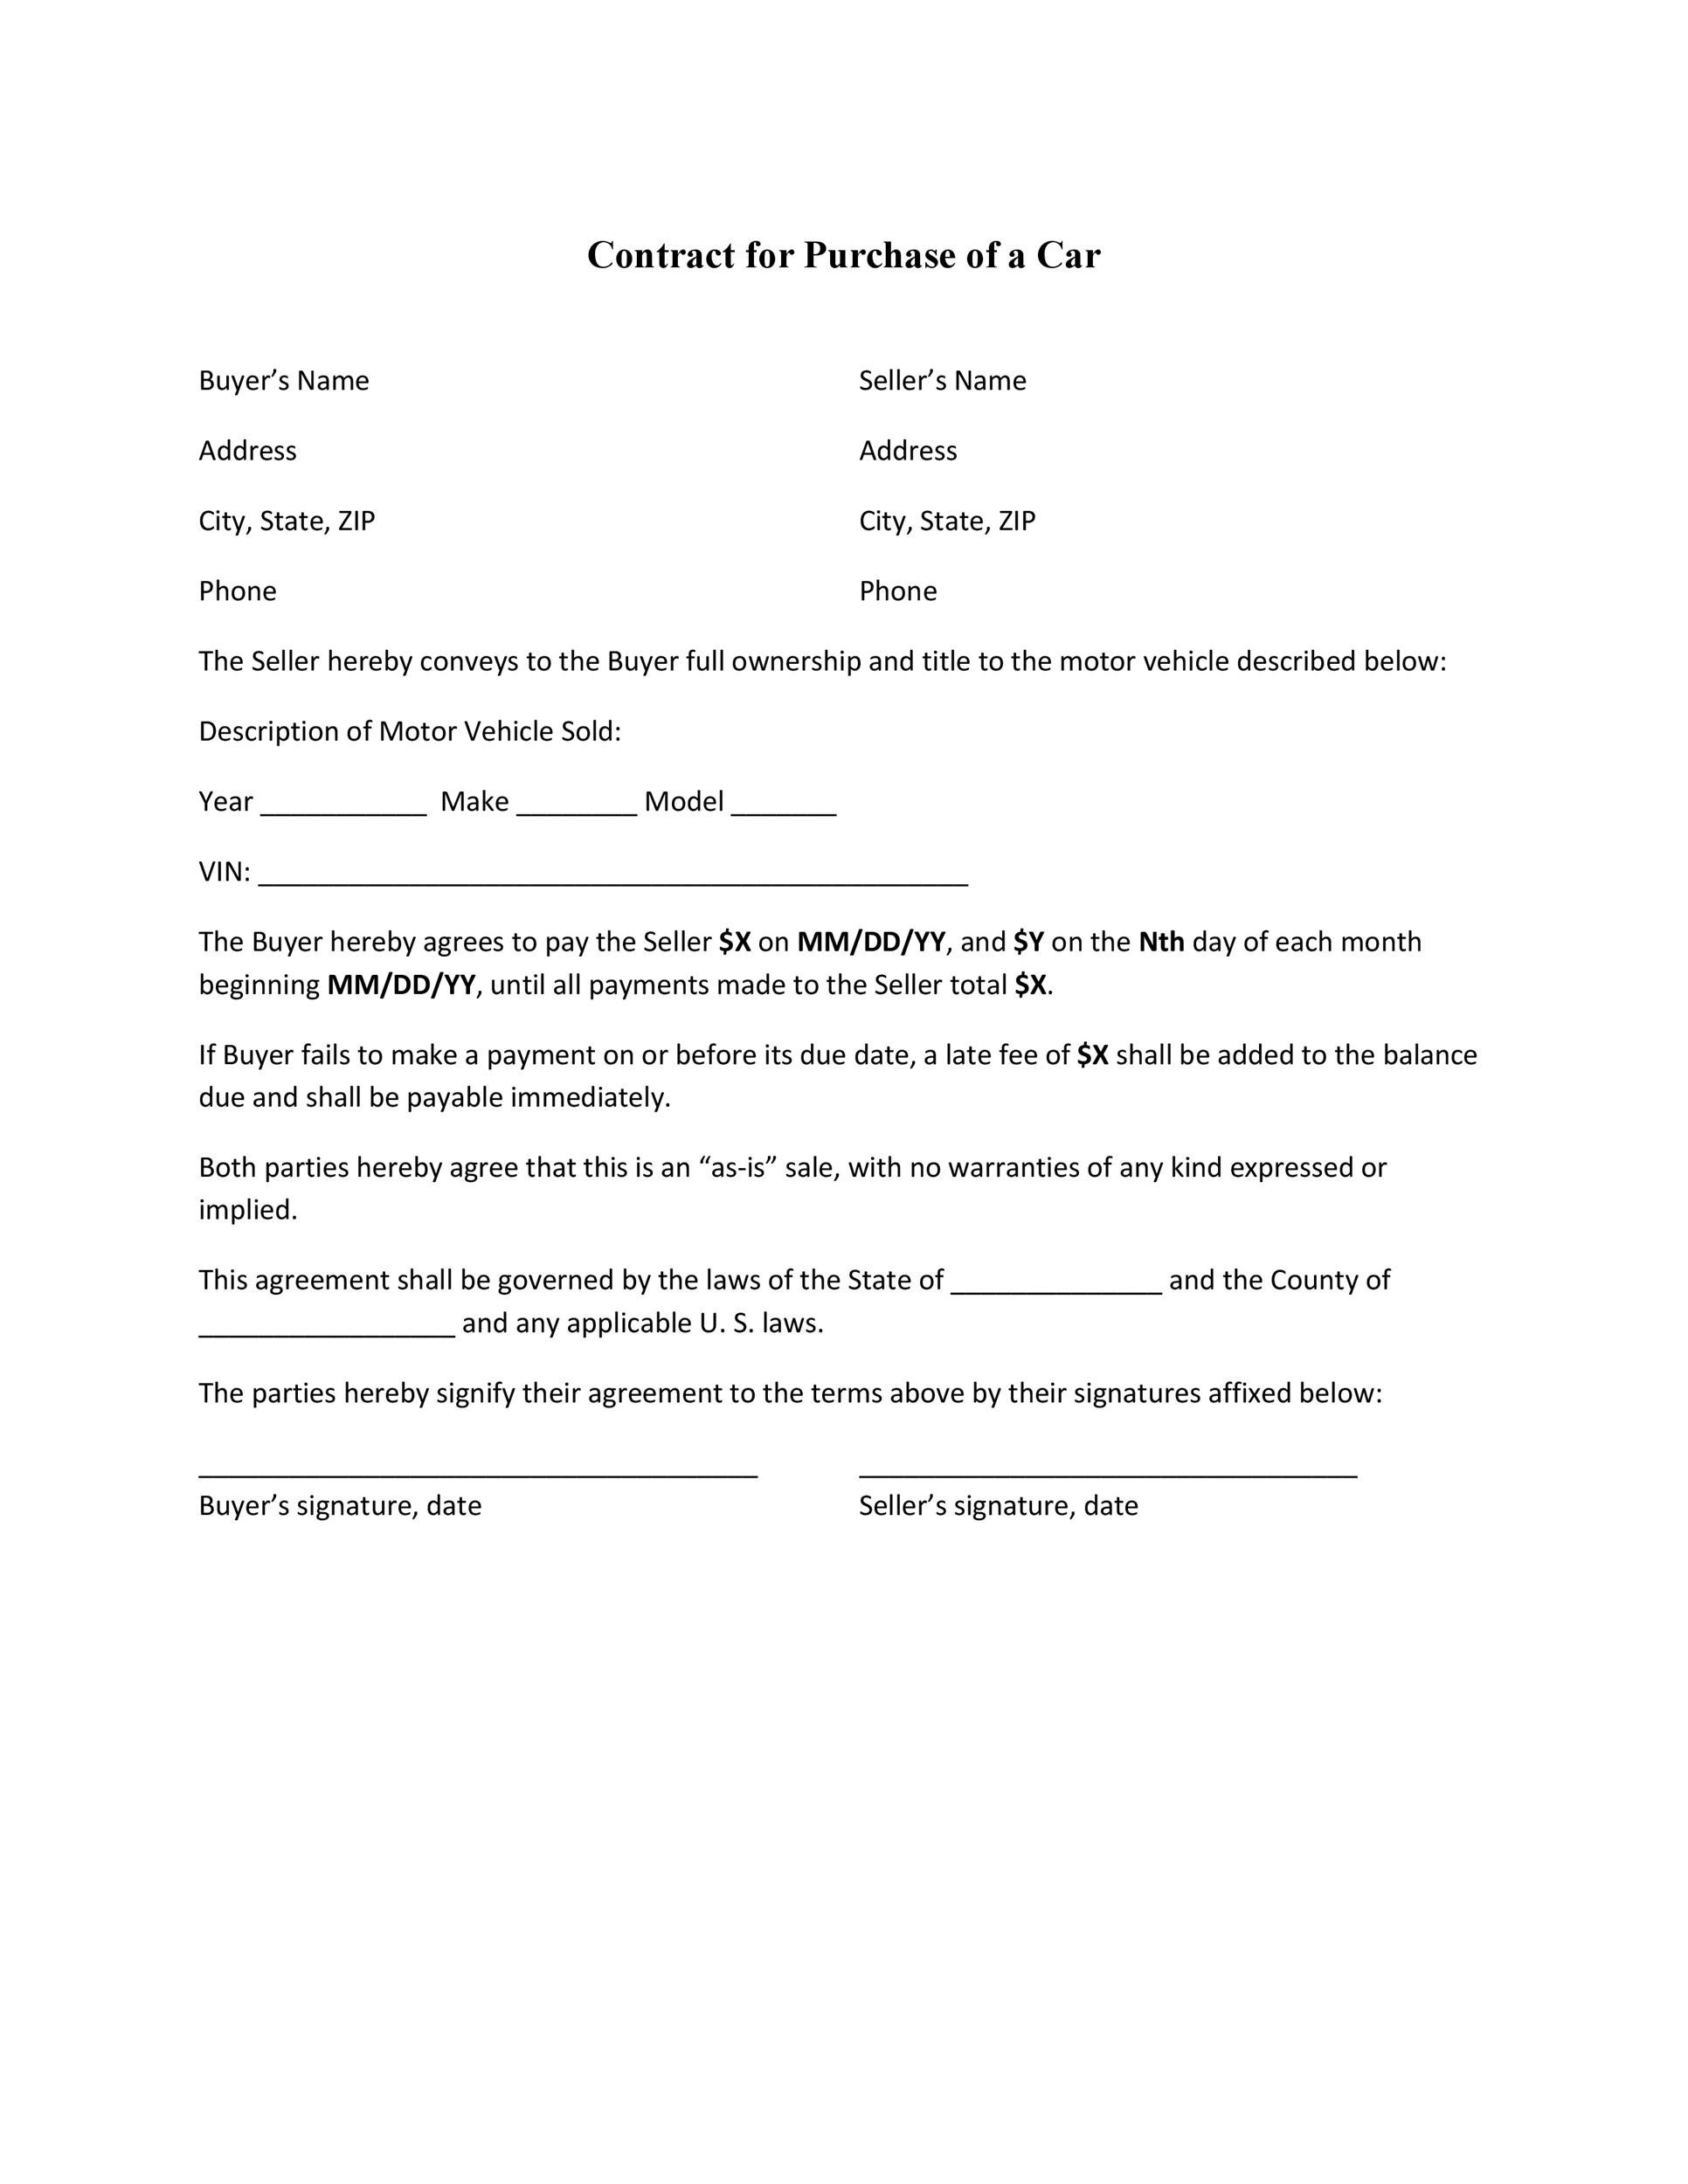 image about Printable Contract for Taking Over Car Payments named 42 Printable Motor vehicle Get Arrangement Templates ᐅ